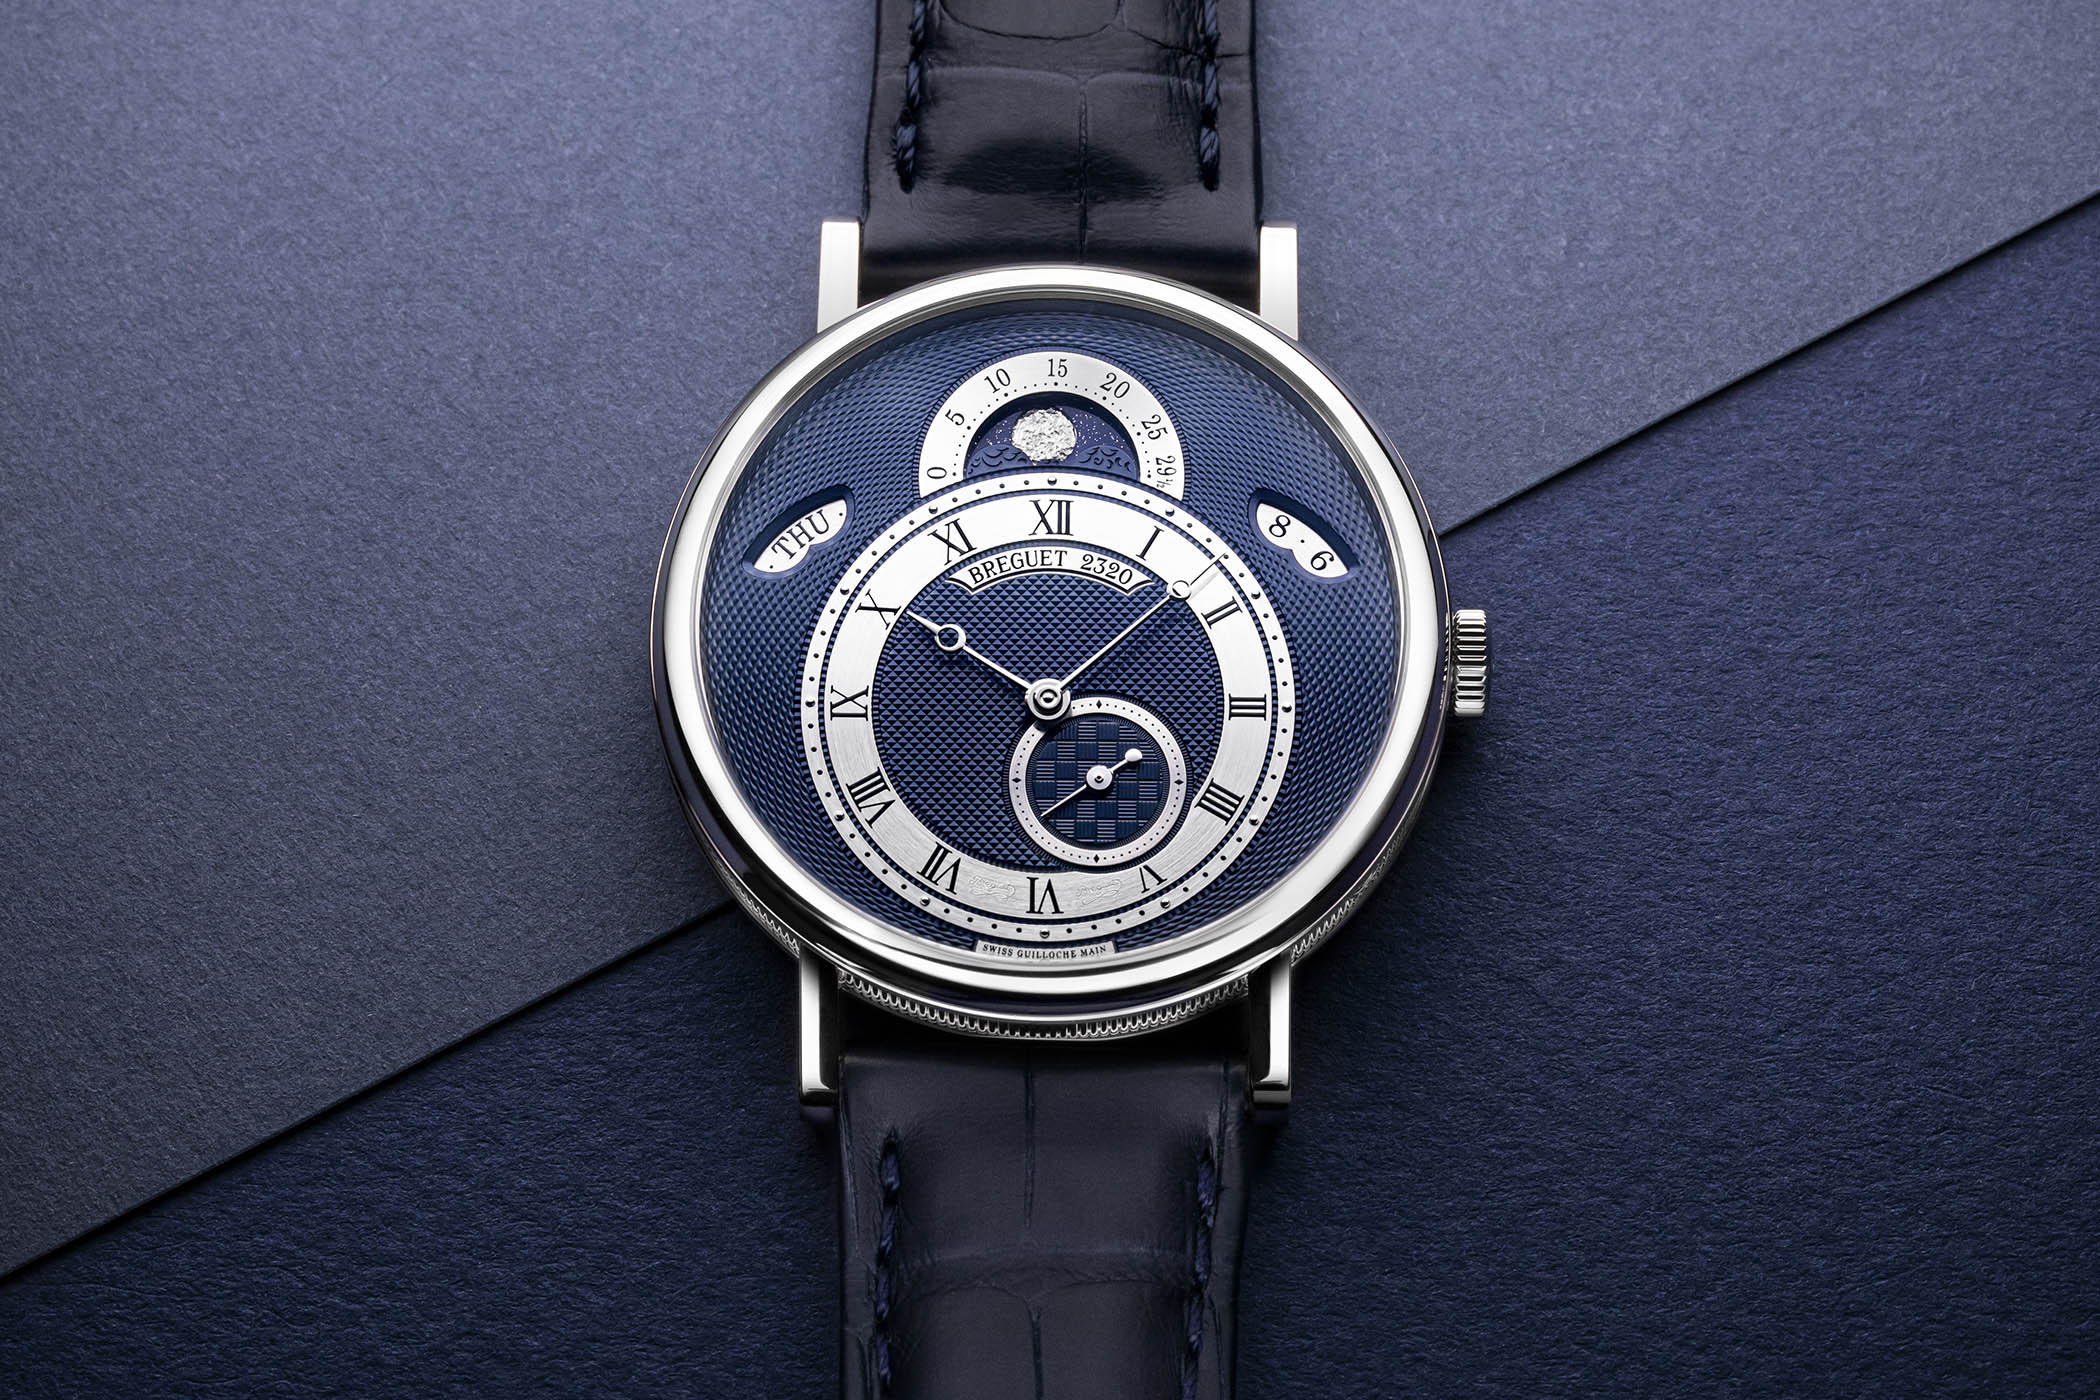 New 2020 Models Breguet Classique 7337 Calendar and Moon